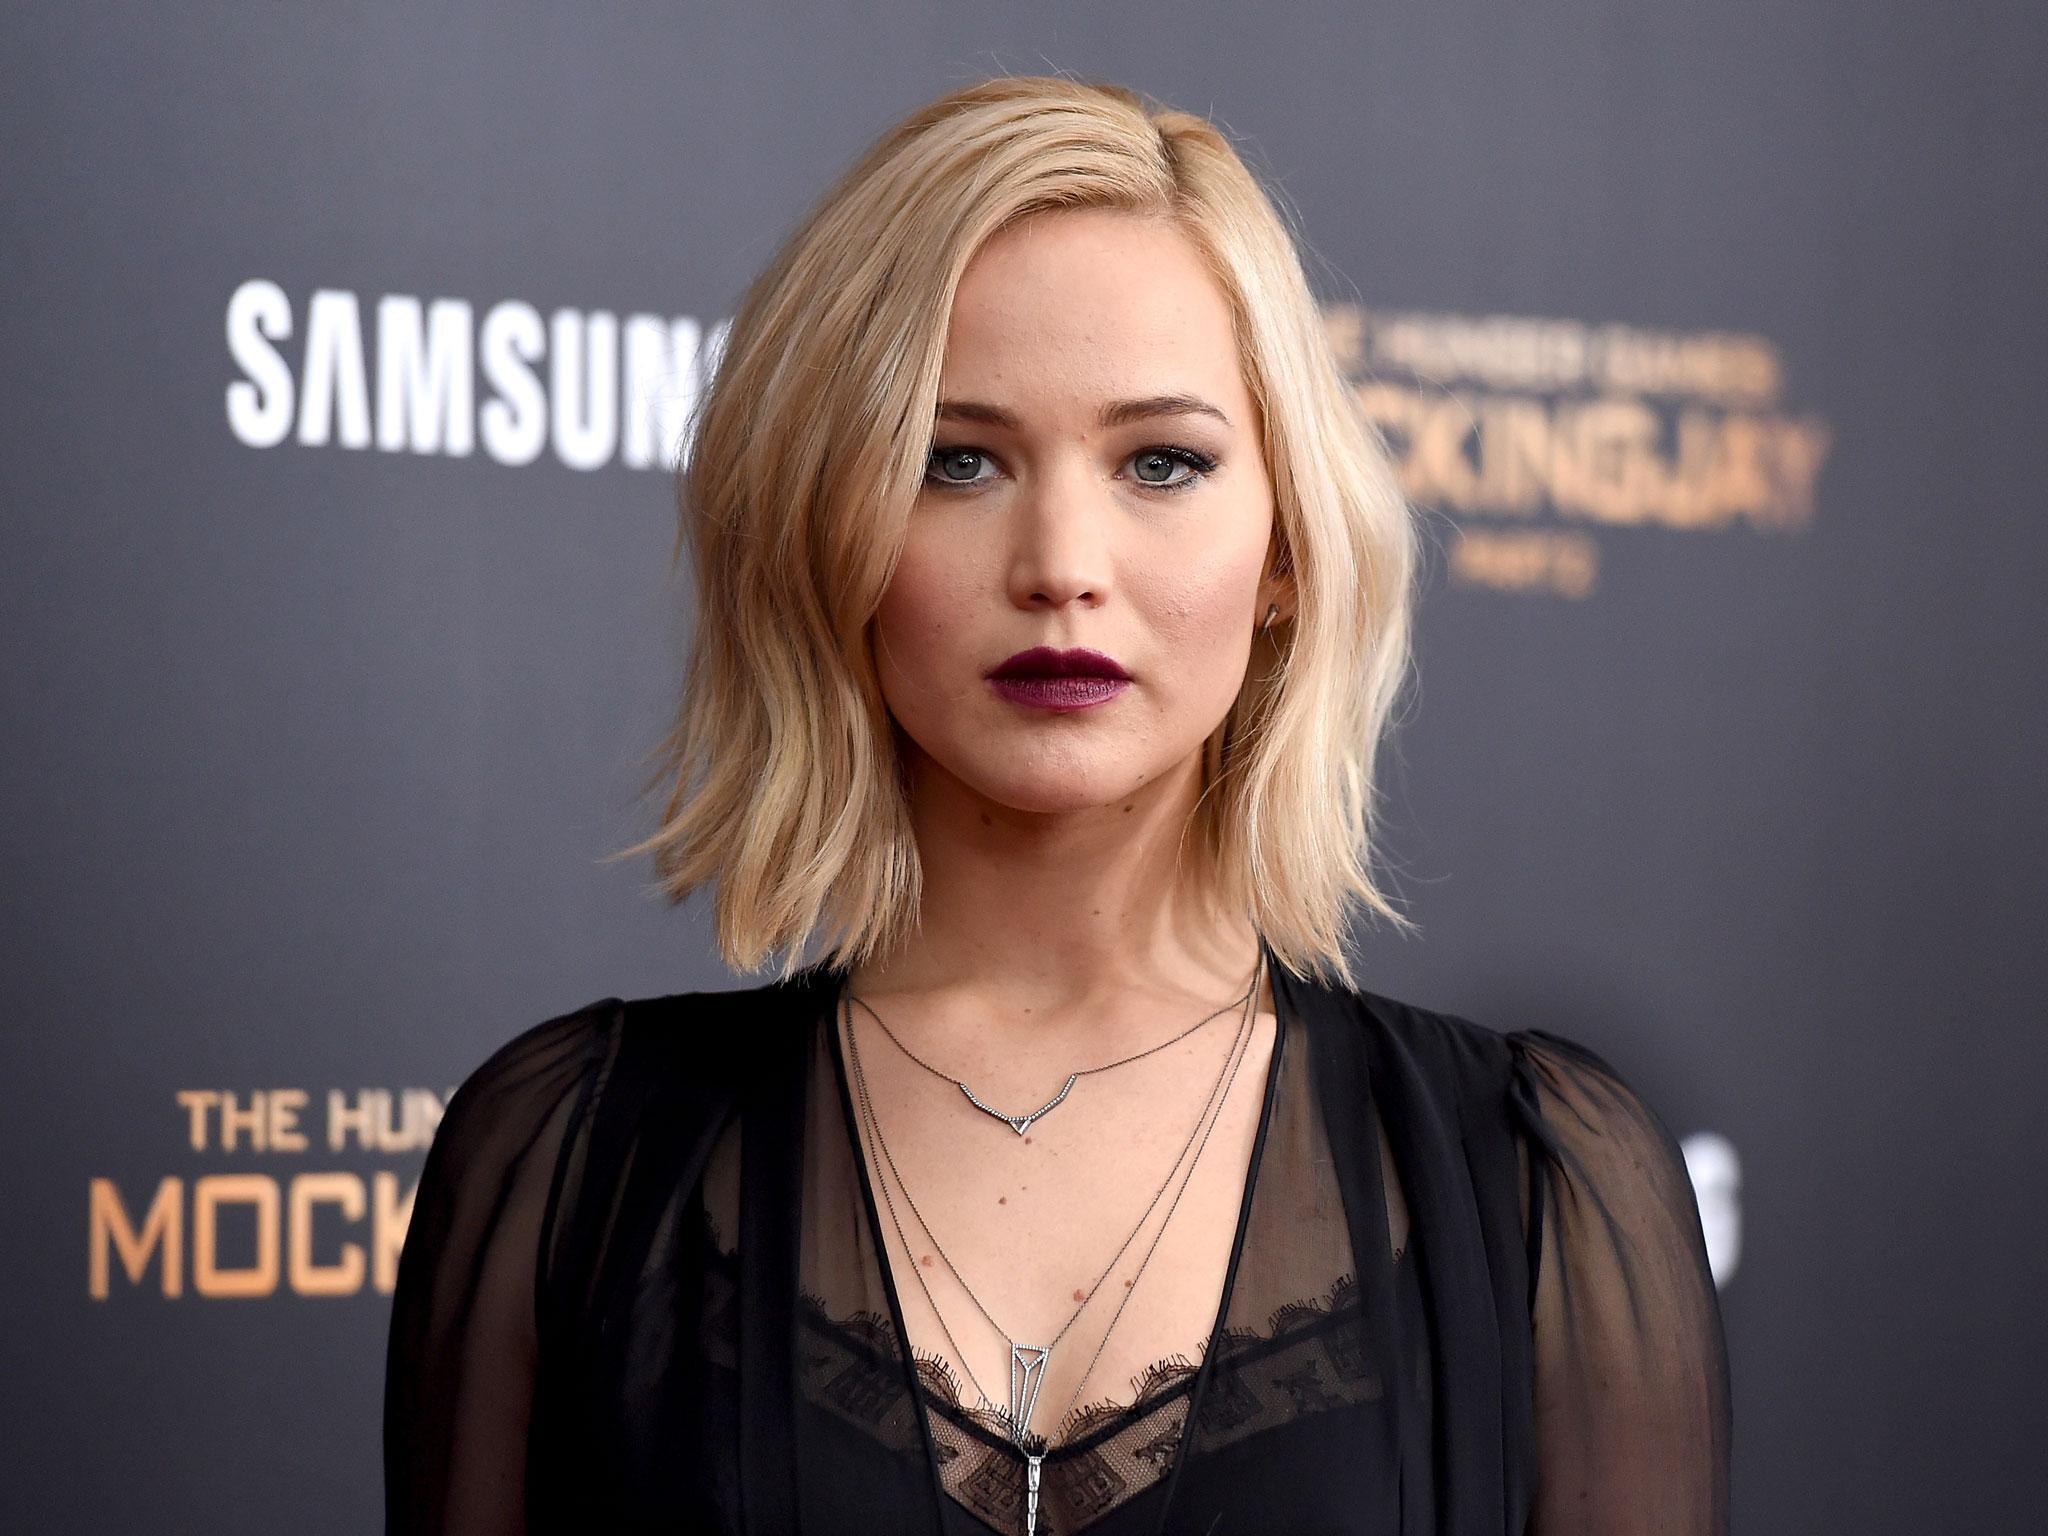 Jennifer Lawrence Gets A Facial After Sex new pics